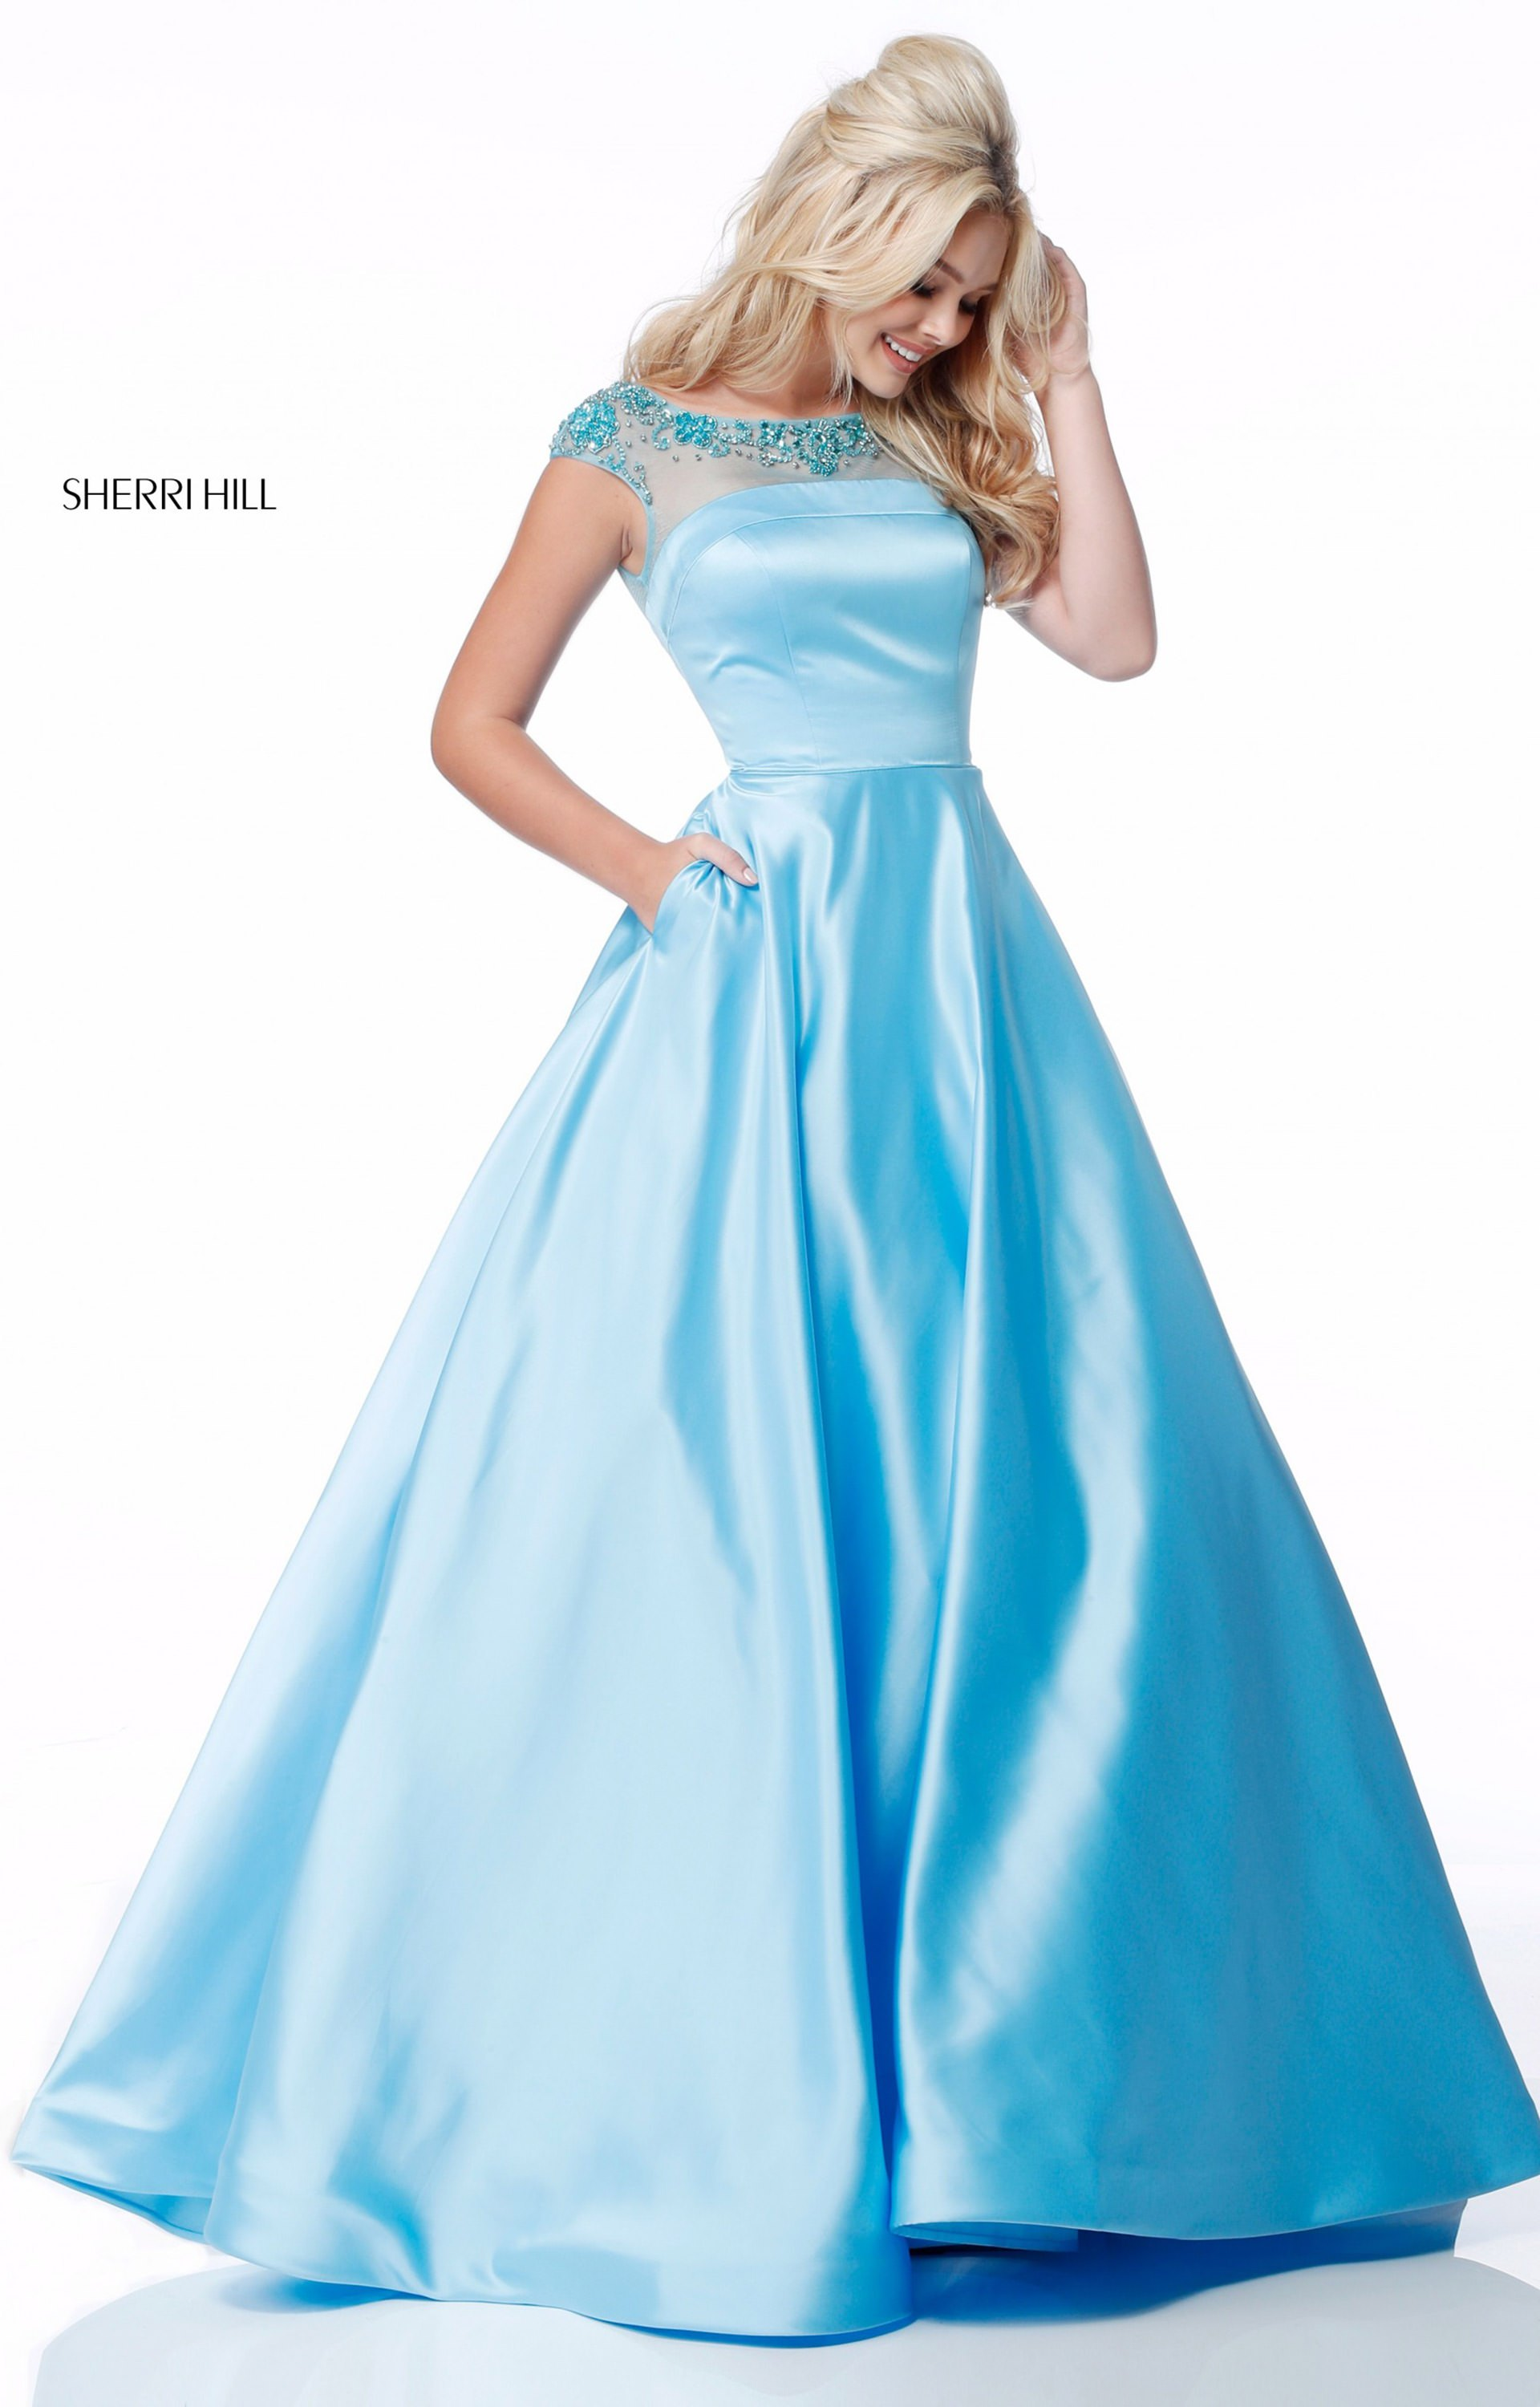 Sherri Hill 51814 Long Satin Ball Gown Cap Sleeves Prom